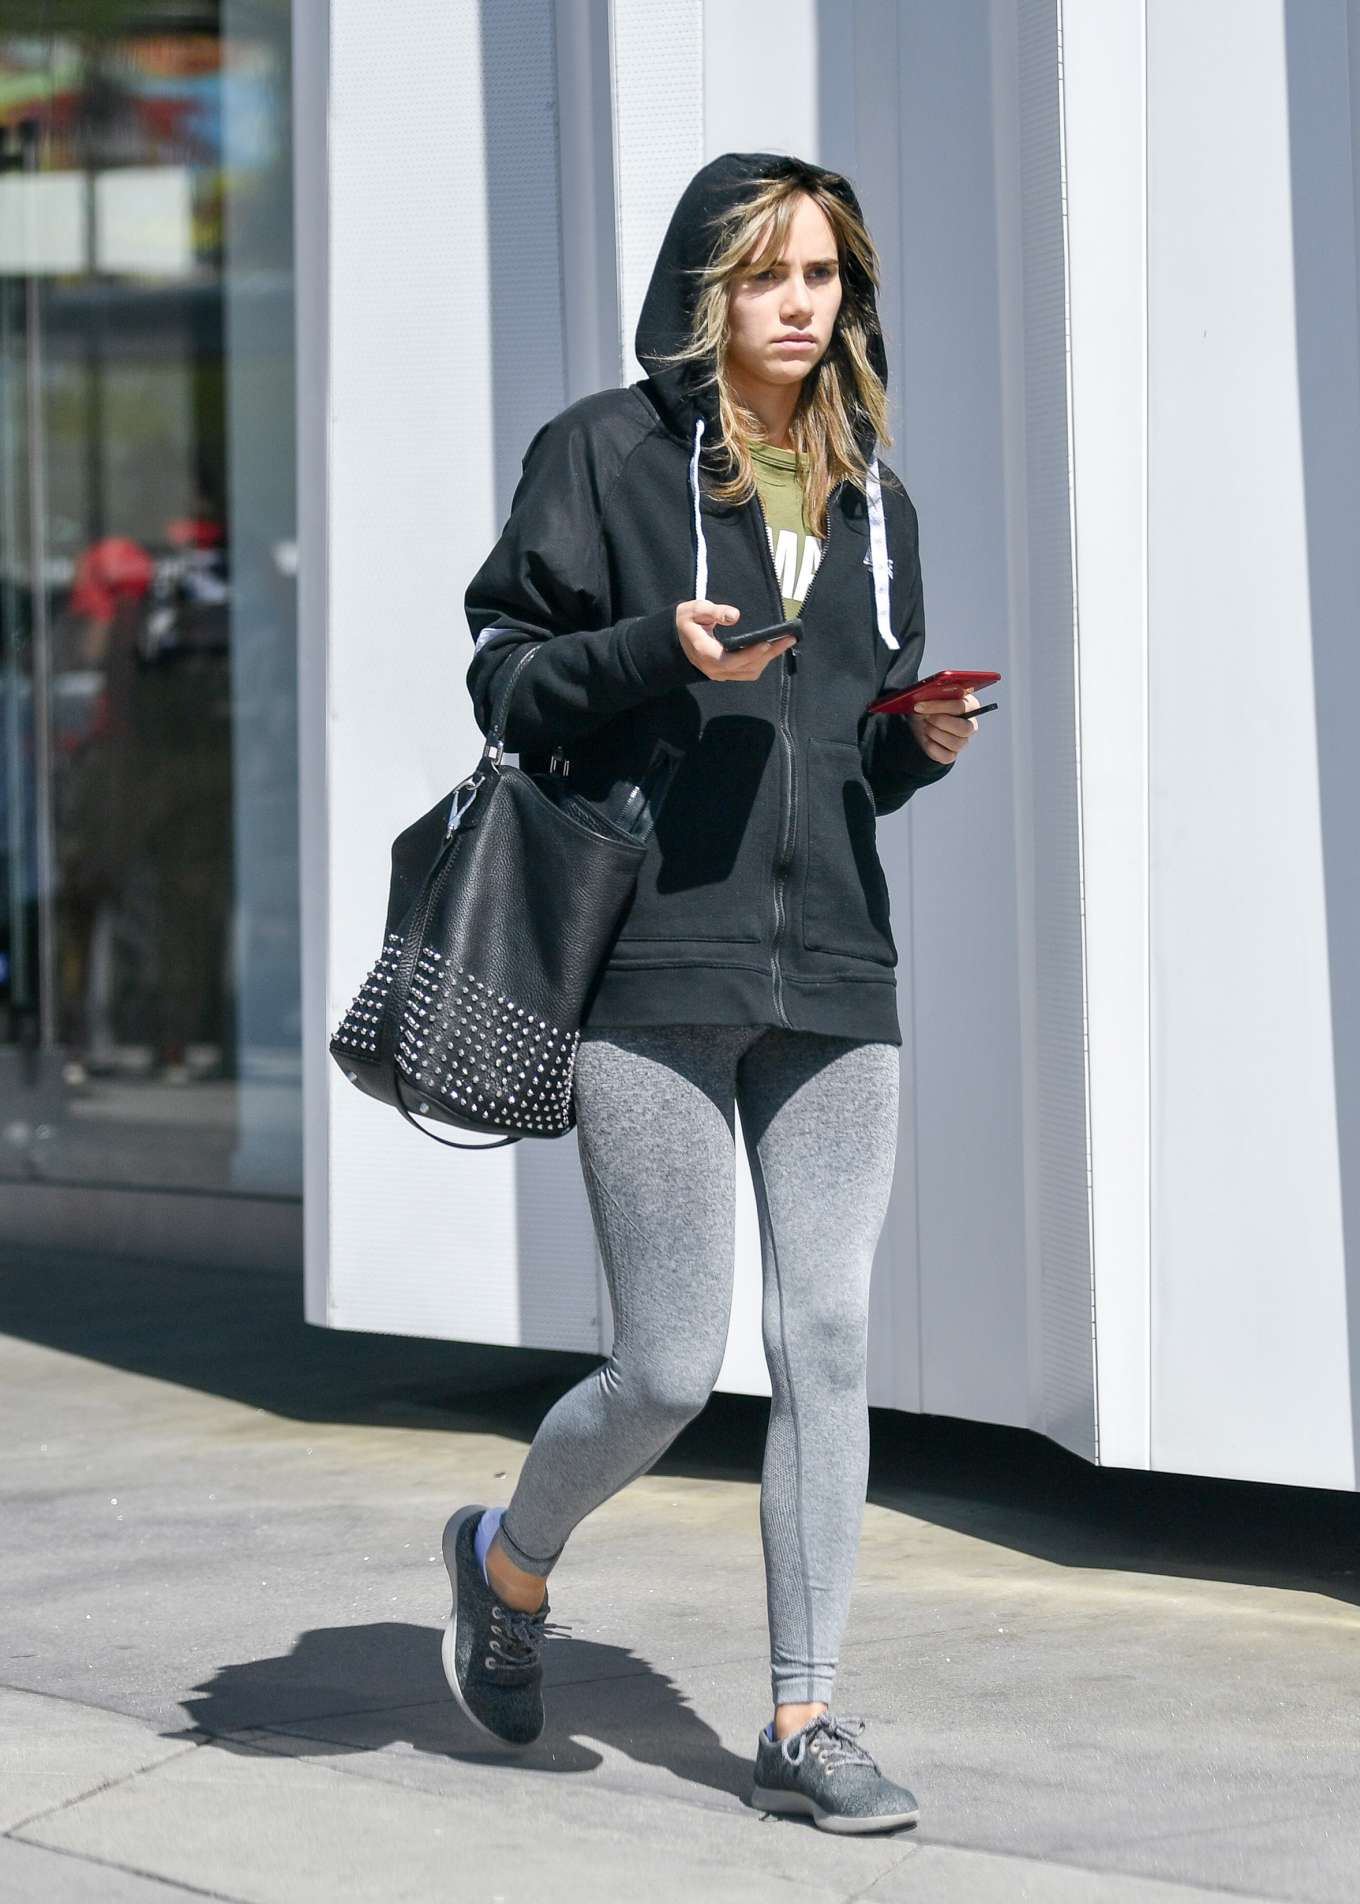 Suki Waterhouse 2019 : Suki Waterhouse: Leaving equinox fitness -13